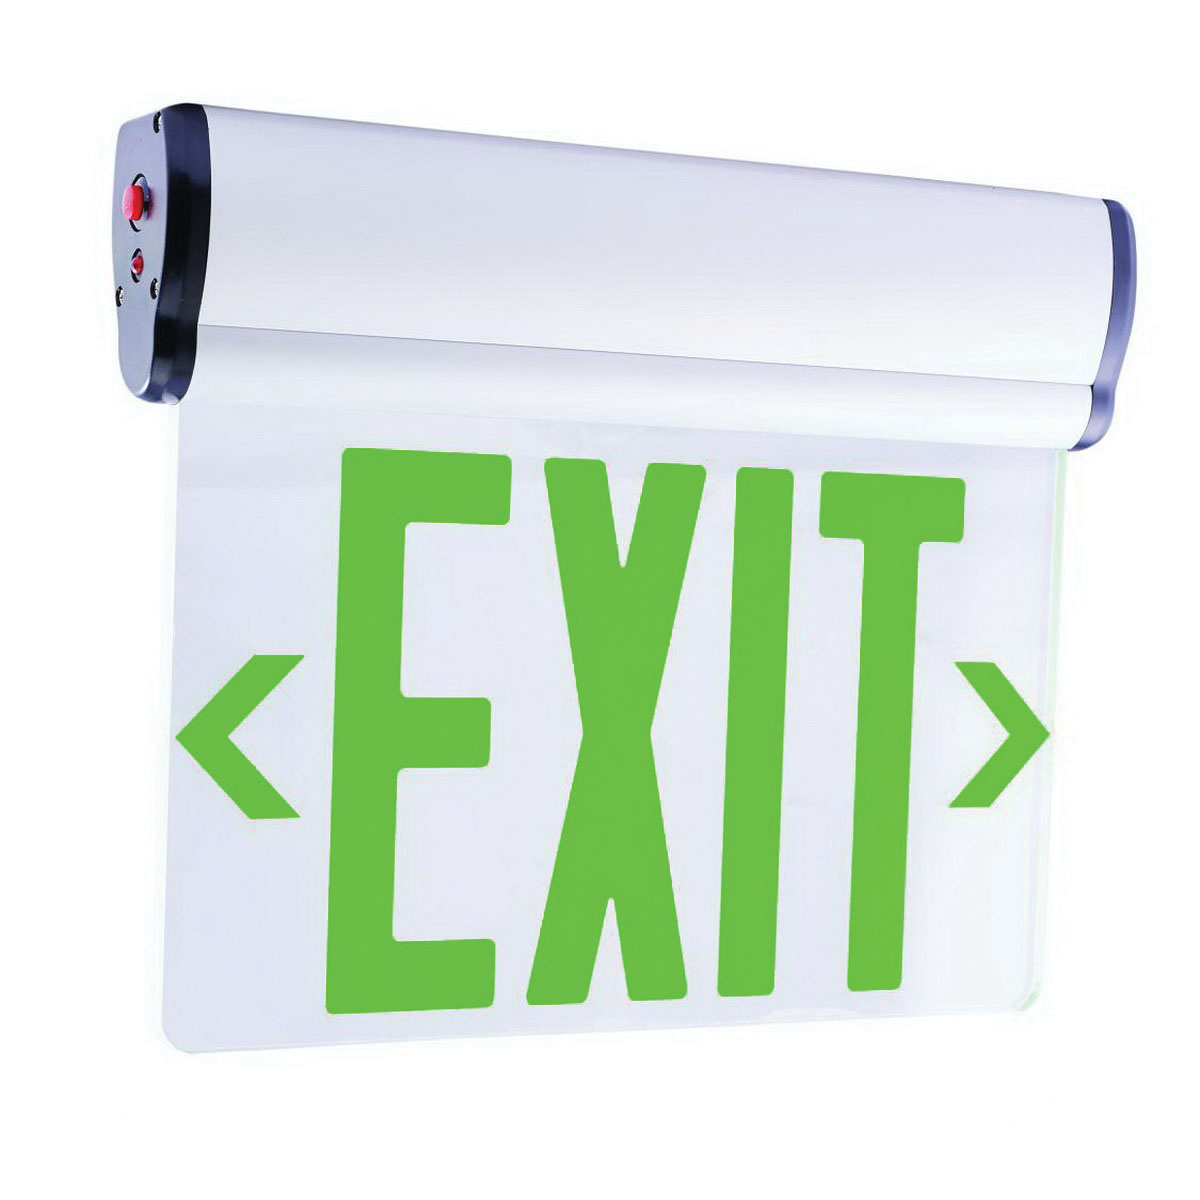 Elco Lighting Edglit1g Transpa Led Edge Lit Exit Sign